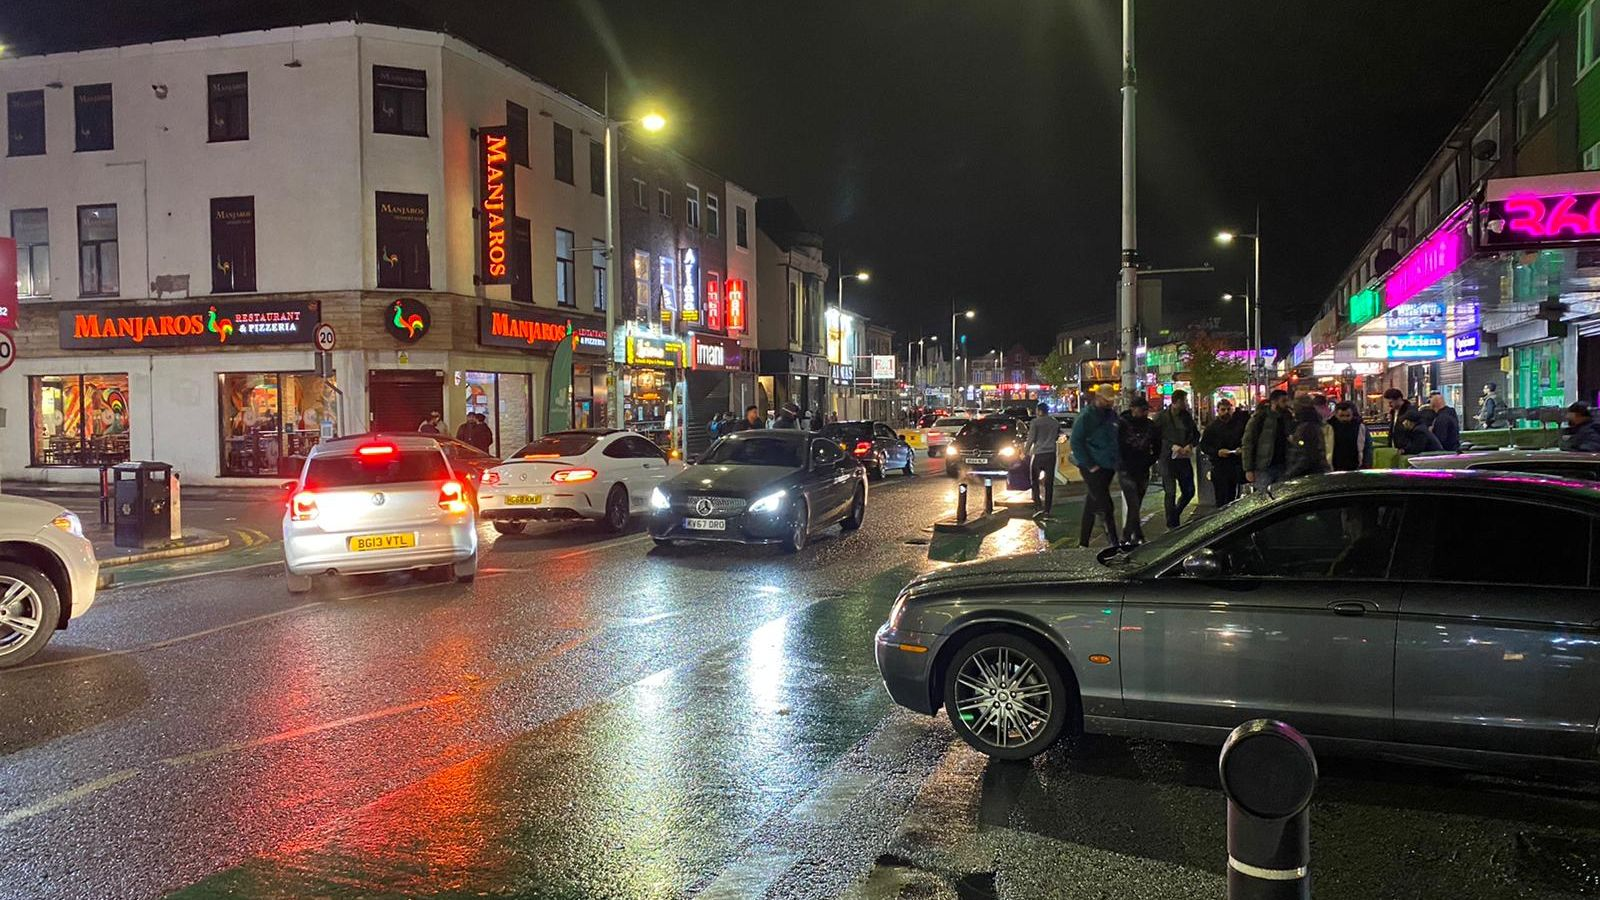 Bars and restaurants on Manchester's so-called Curry Mile were full on Friday night